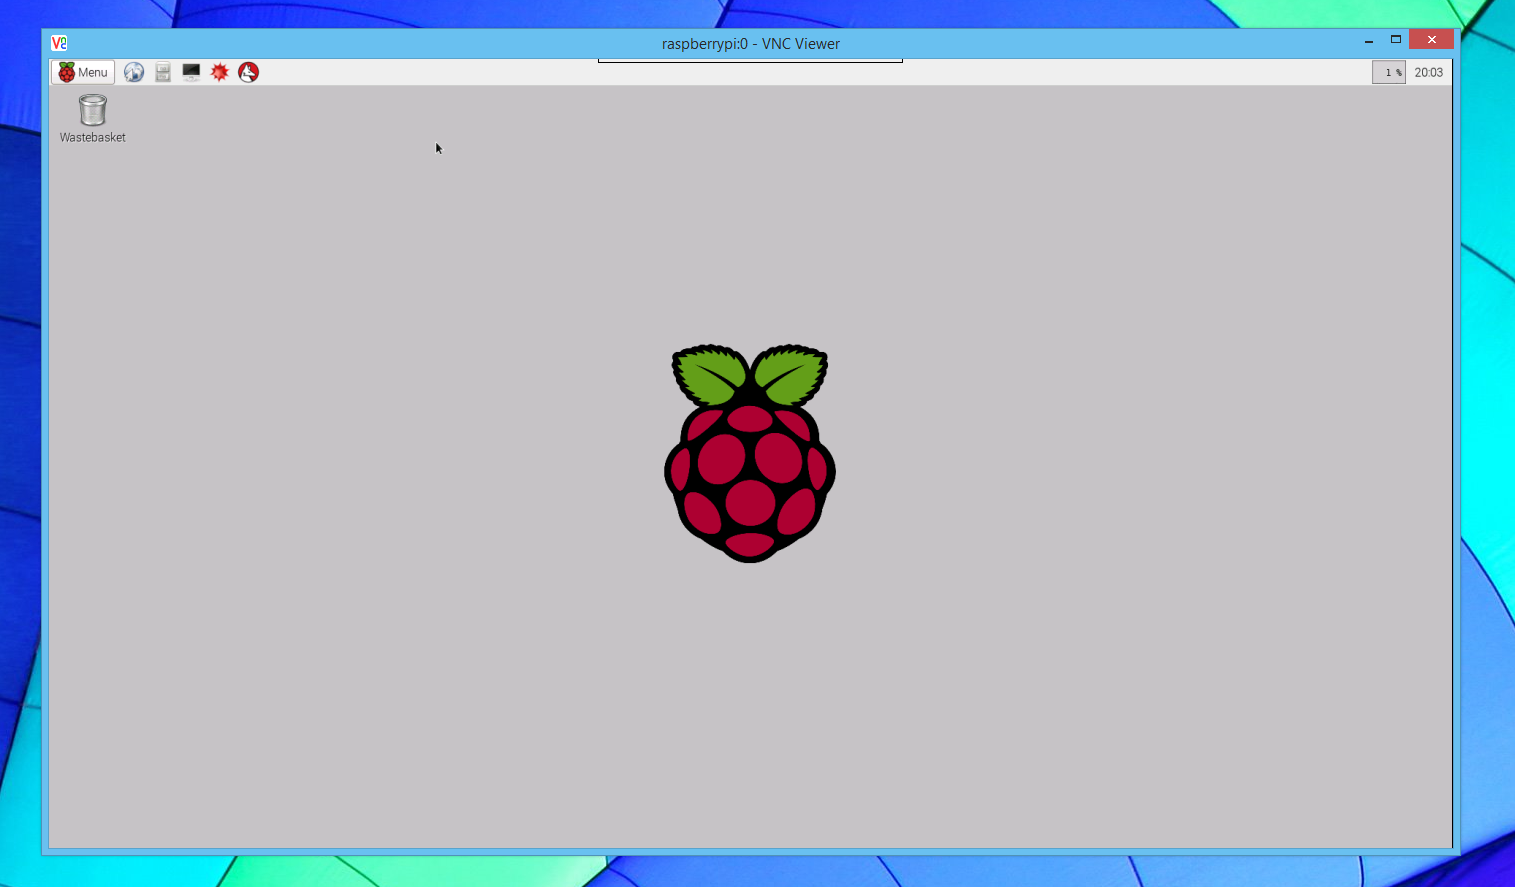 Connected to Raspberry Pi  with VNC Viewer